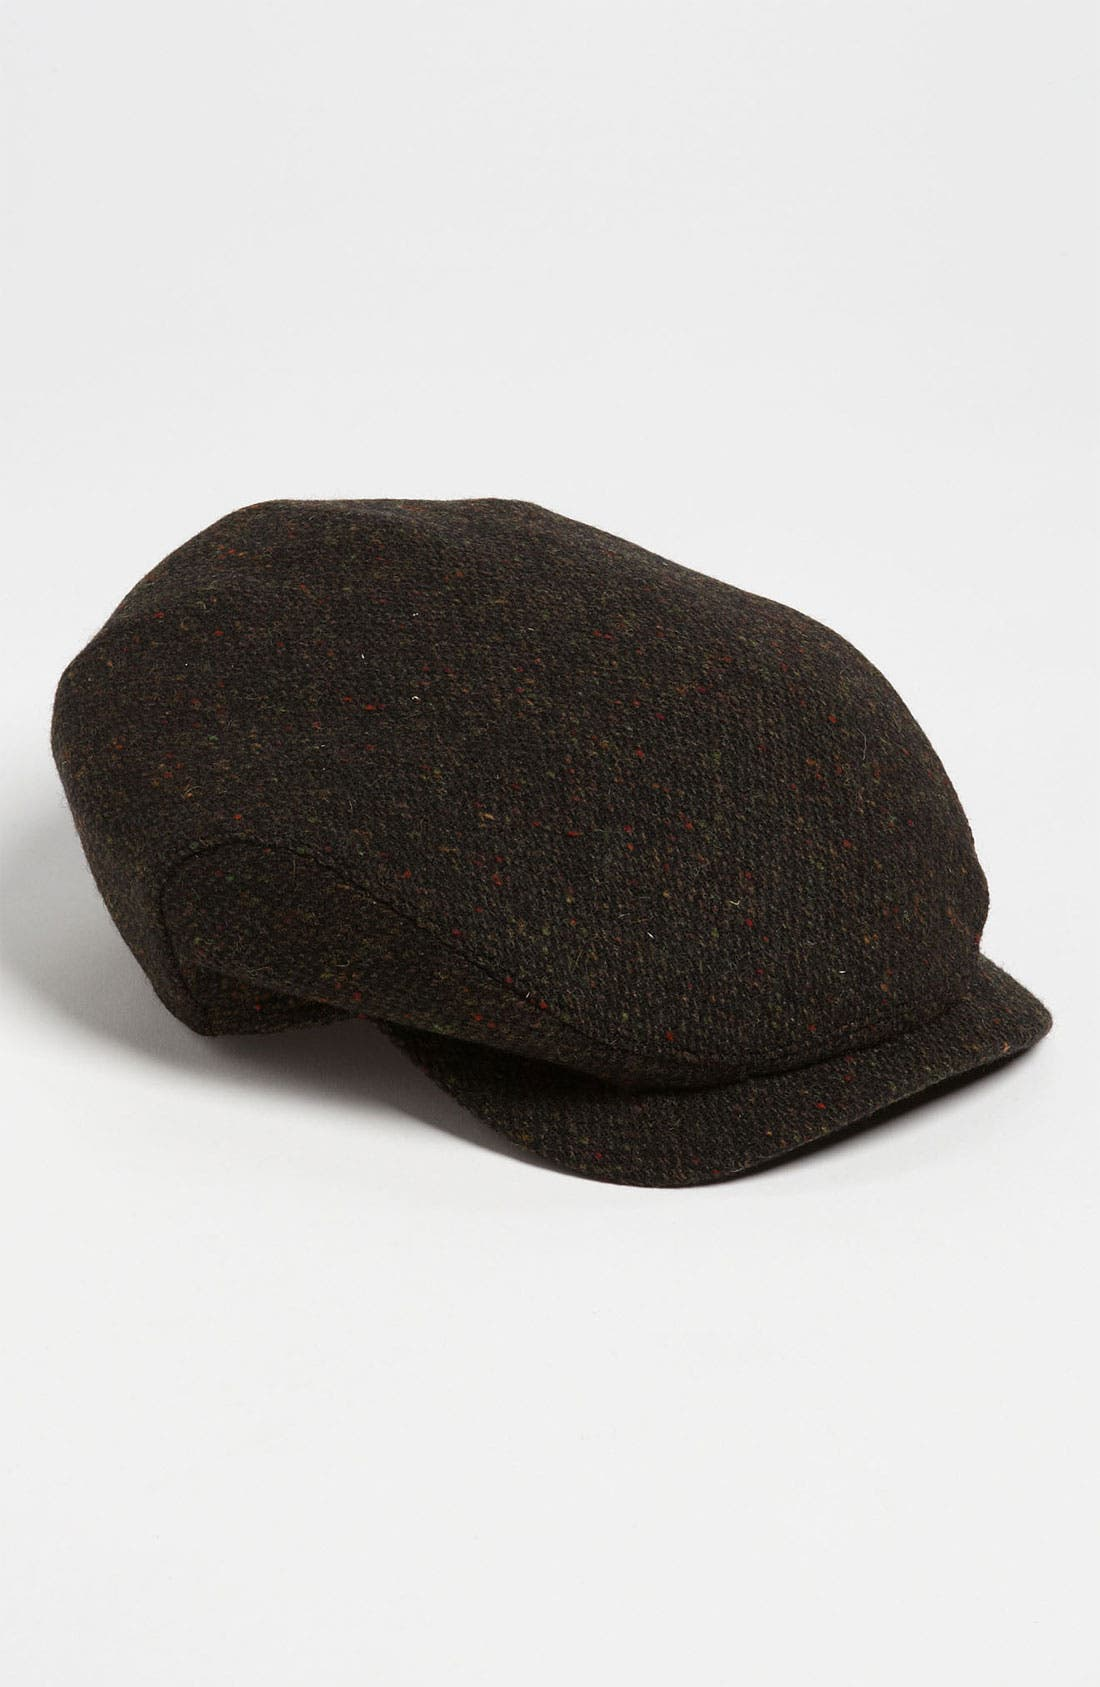 Alternate Image 1 Selected - Wigens Donegal Tweed Earflap Driving Cap